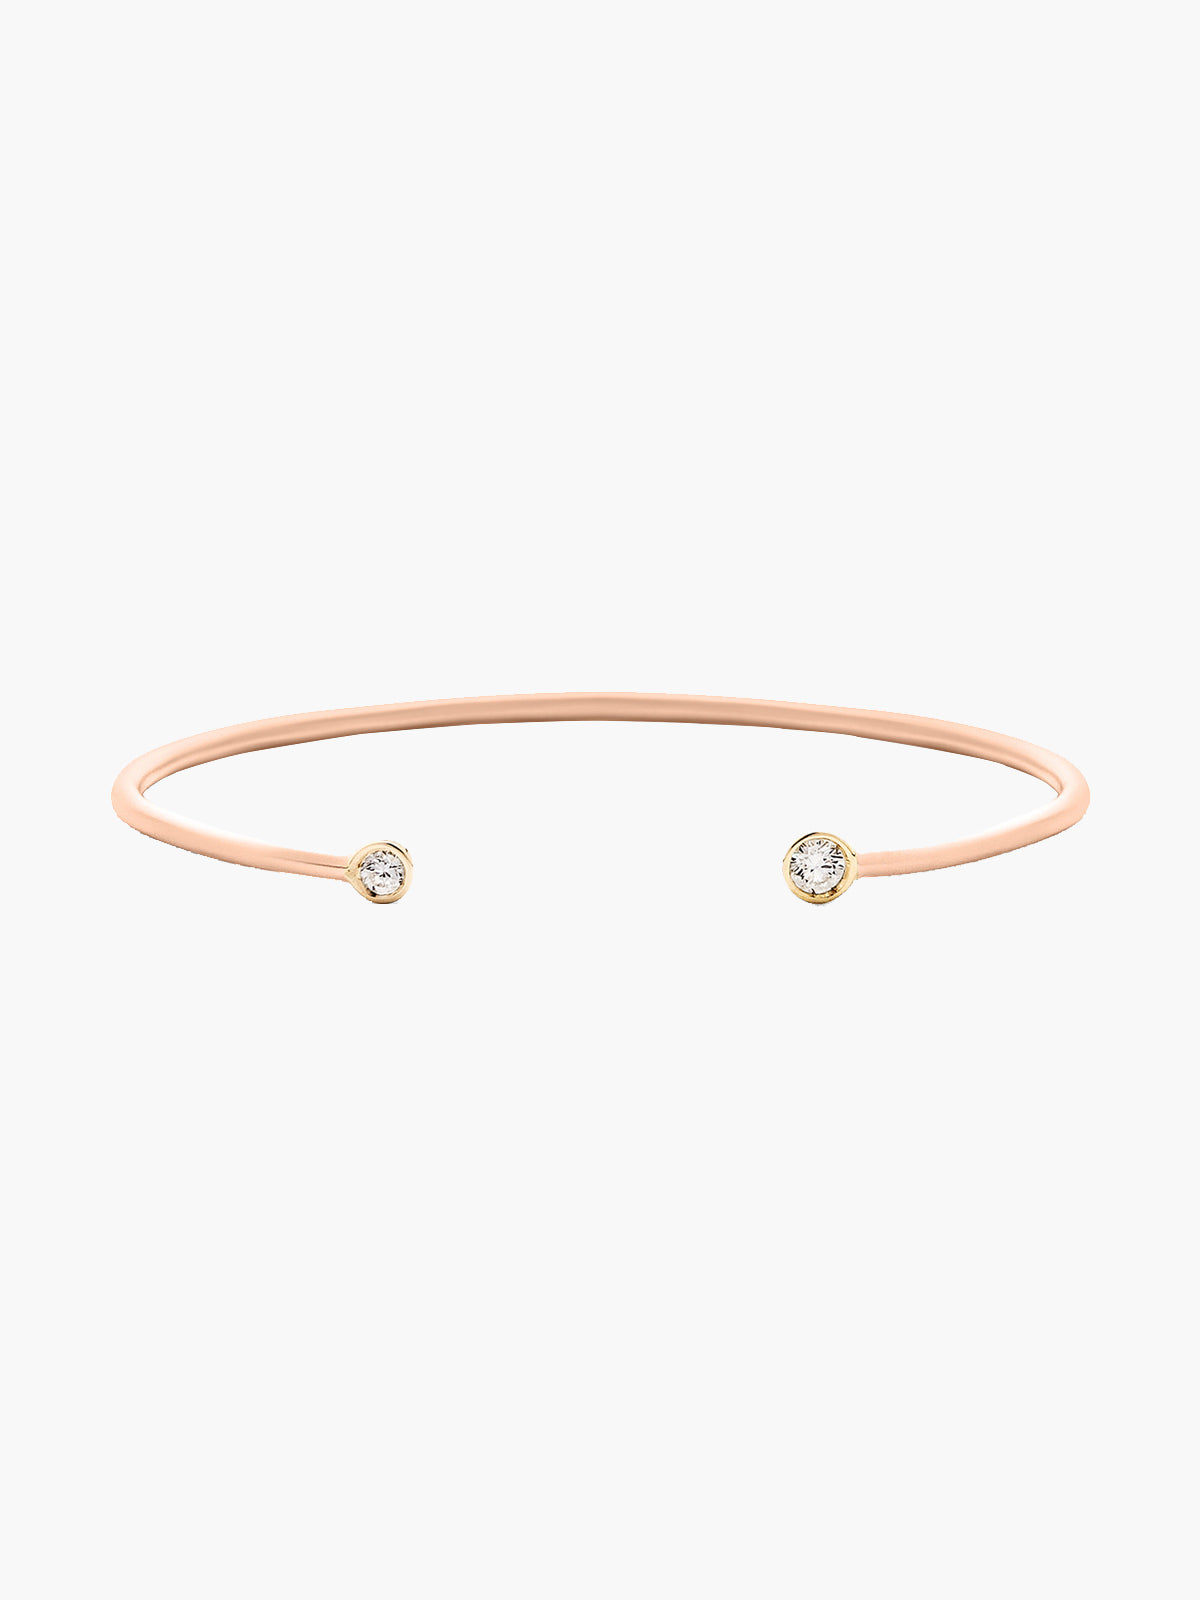 Double Diamond Open Cuff | Rose Gold Matte Double Diamond Open Cuff | Rose Gold Matte